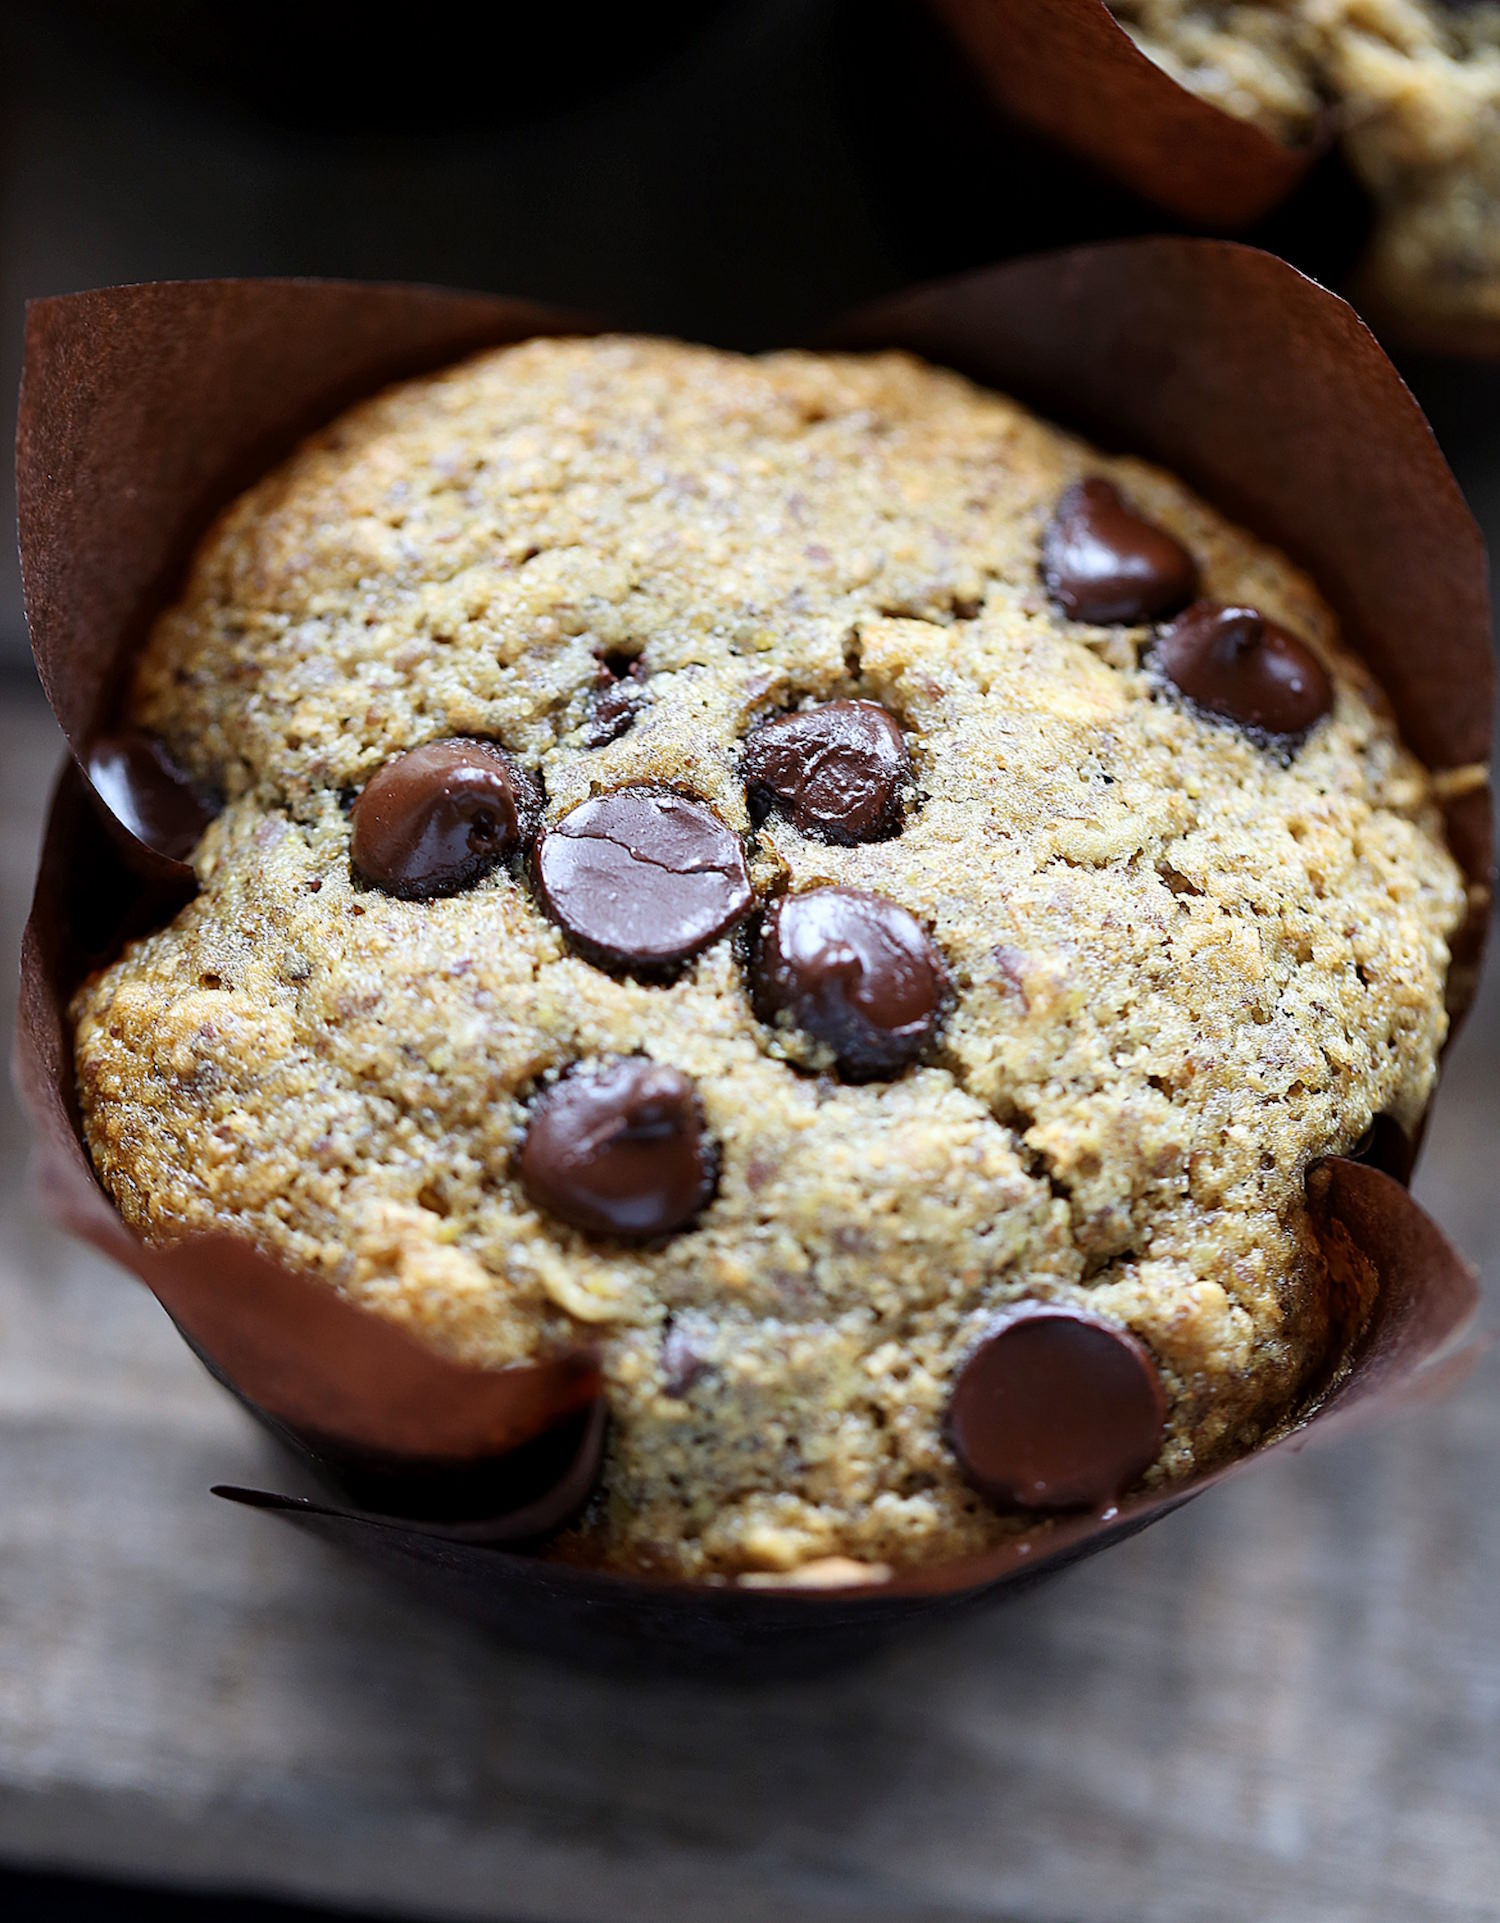 Whole Wheat Oatmeal Flax Chocolate Chip Muffins: soft, fluffy, wholesome muffins make the perfect breakfast or snack. Easy and delicious! | TrufflesandTrends.com